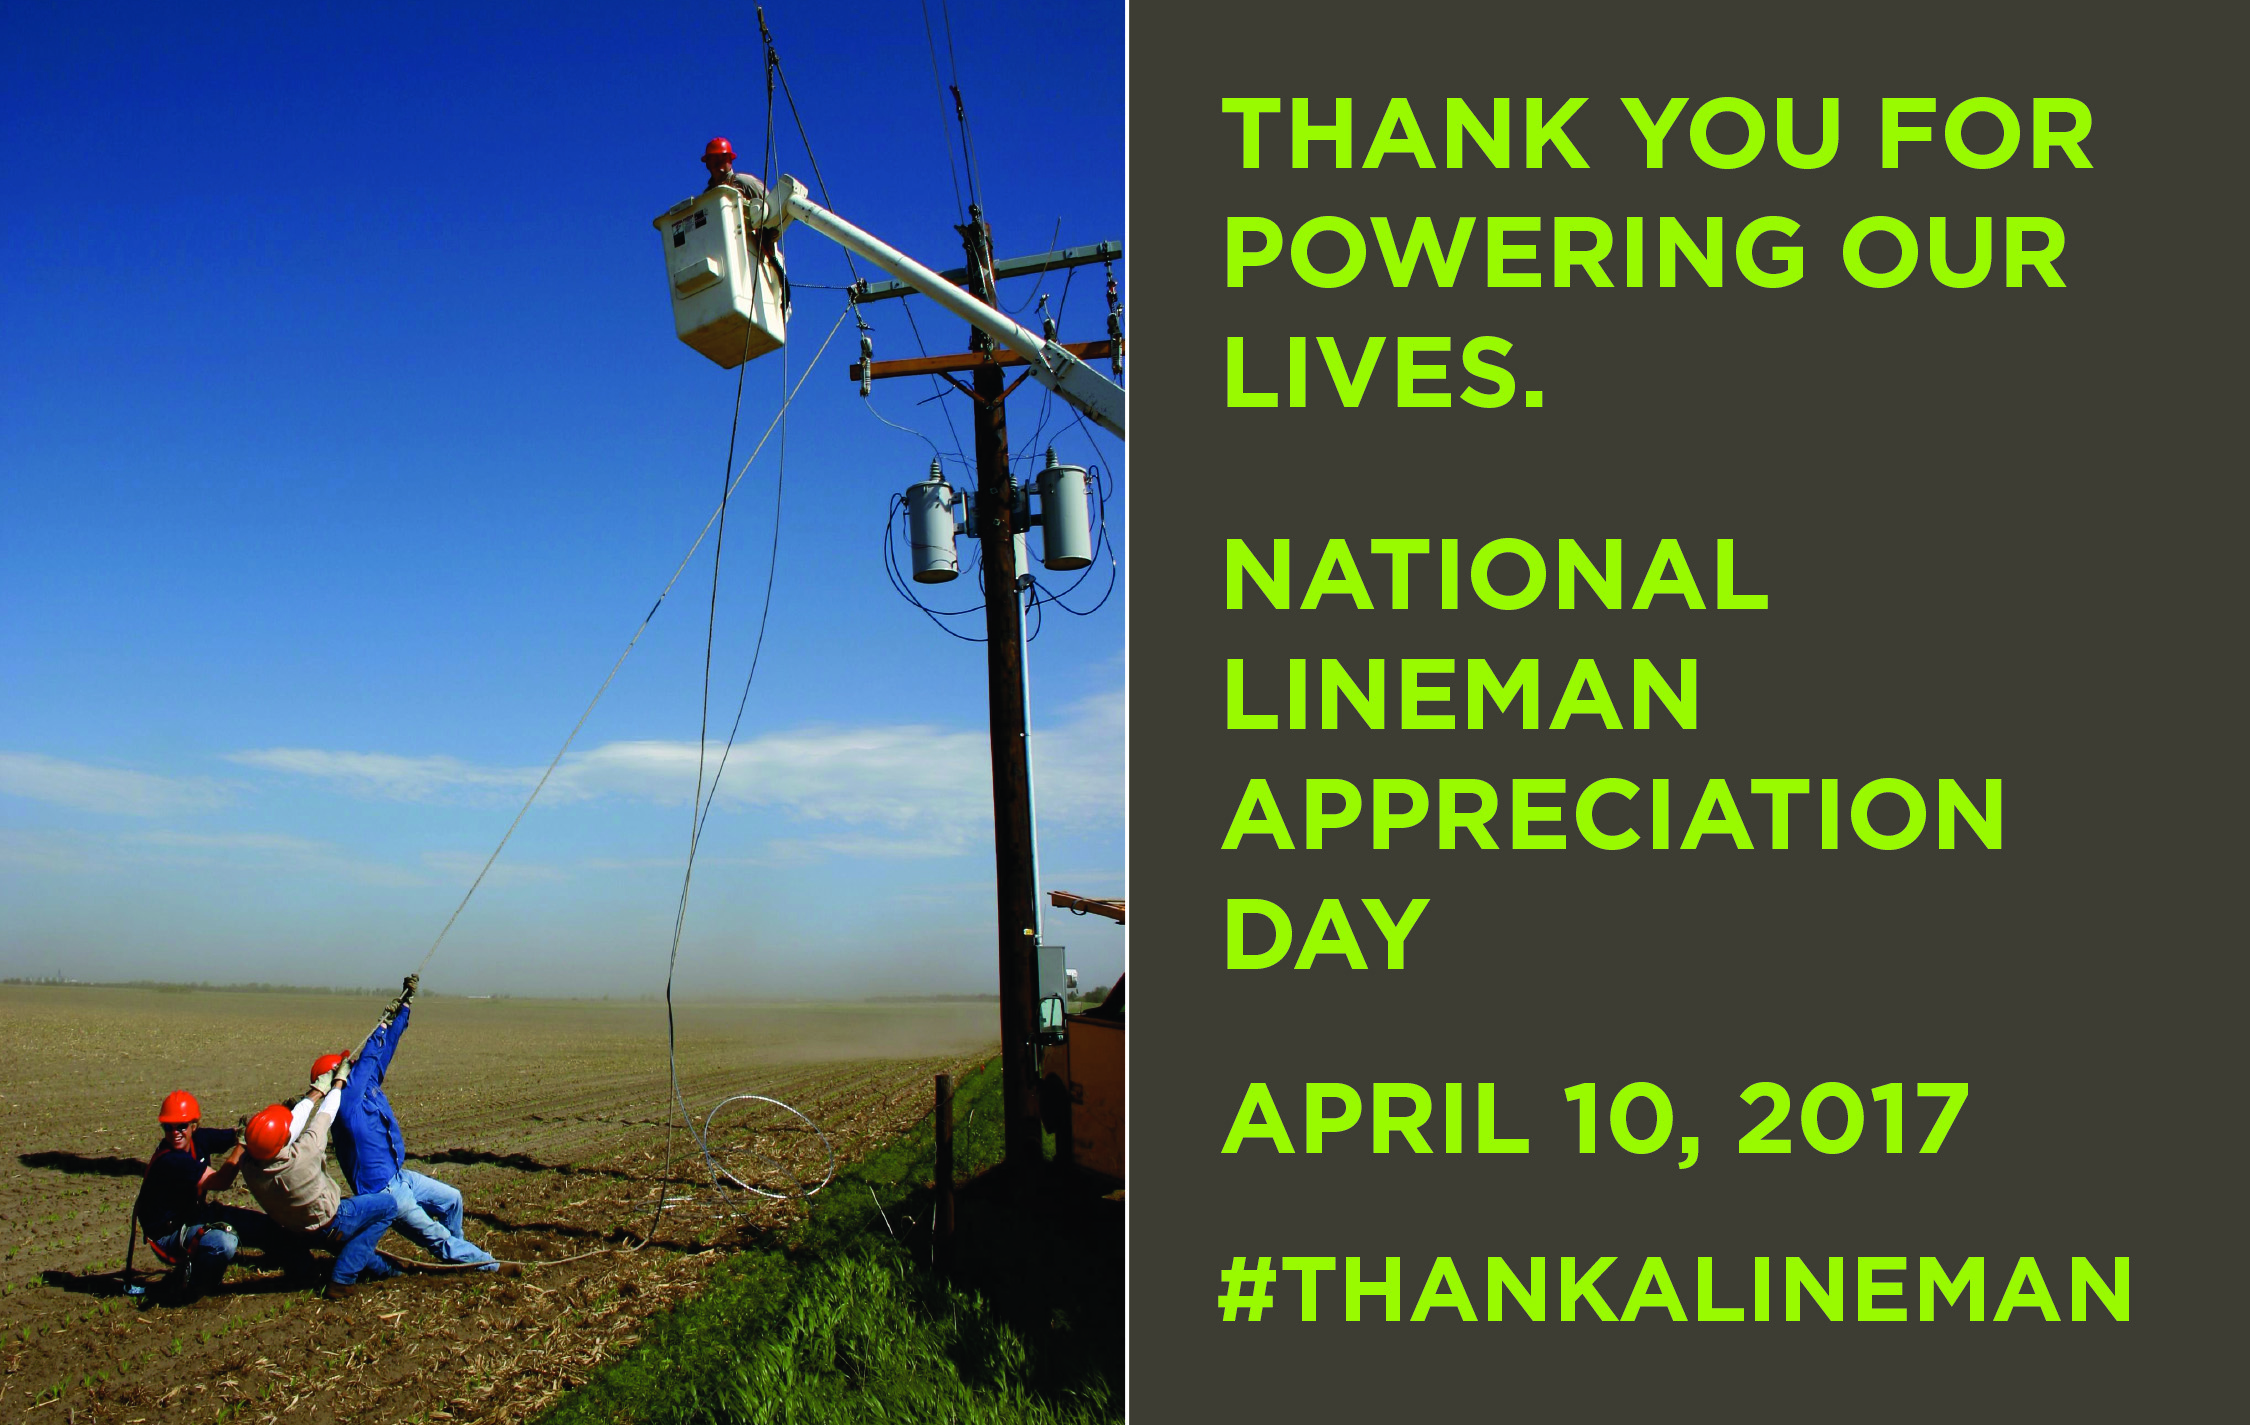 Lineman Appreciation Day Working For Nebraska